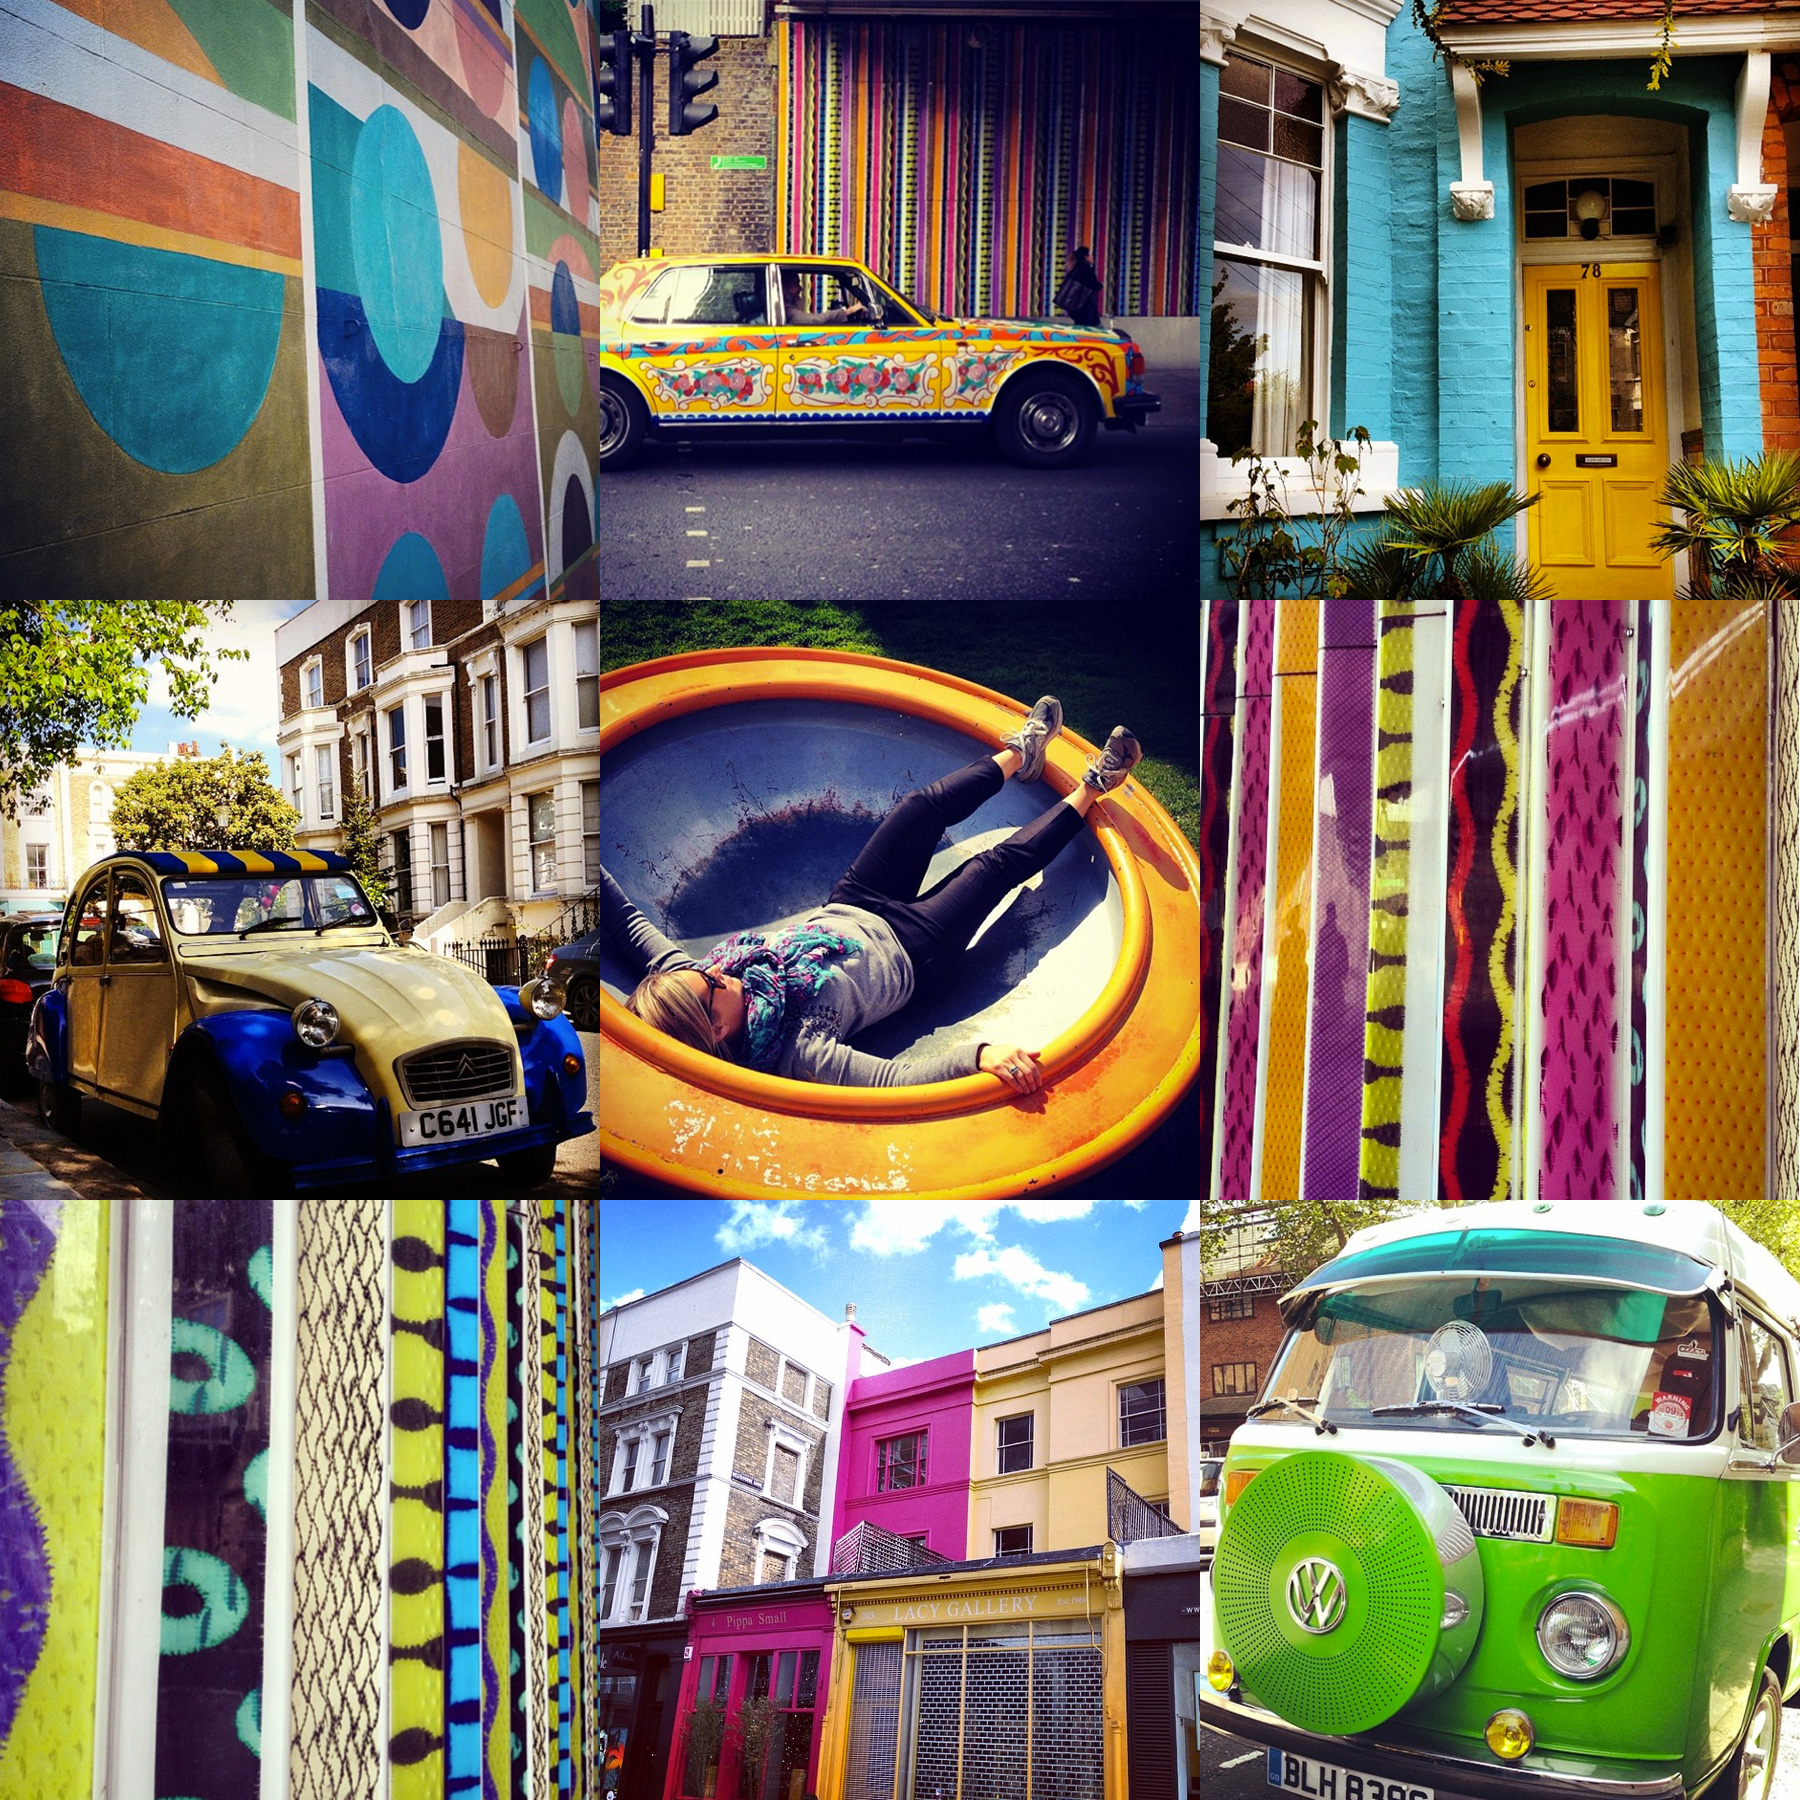 Bright and bold sights in Notting Hill, Liz Nehdi 2014